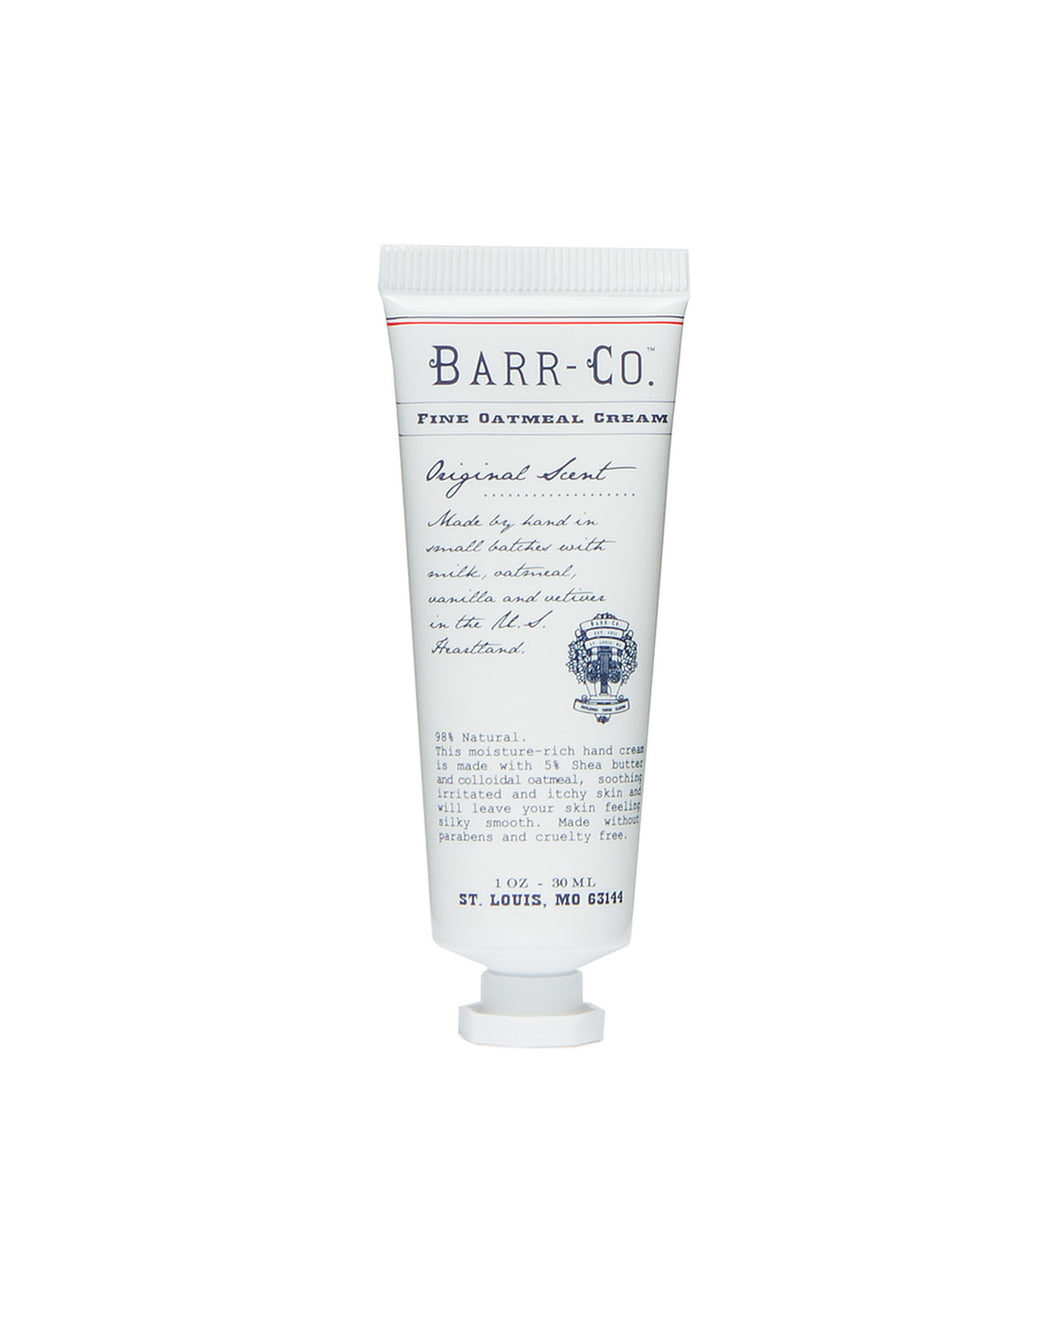 Barr-Co. Original Scent Mini Hand Cream - Indie Indie Bang! Bang!